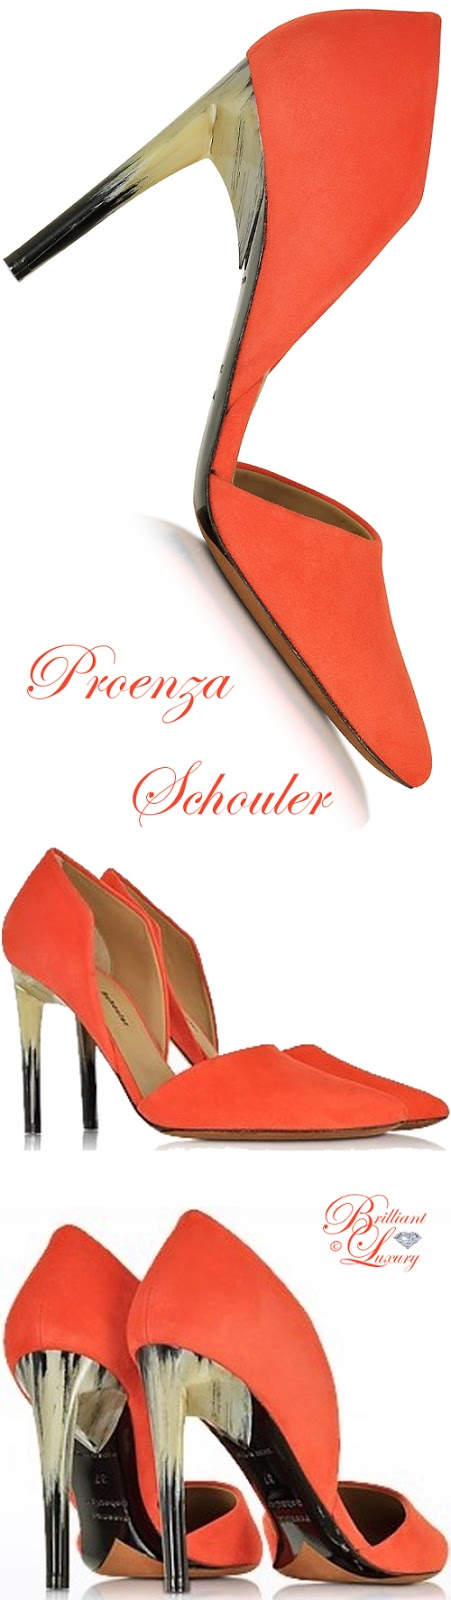 Brilliant Luxury ♦ Proenza Schouler Suede Pumps